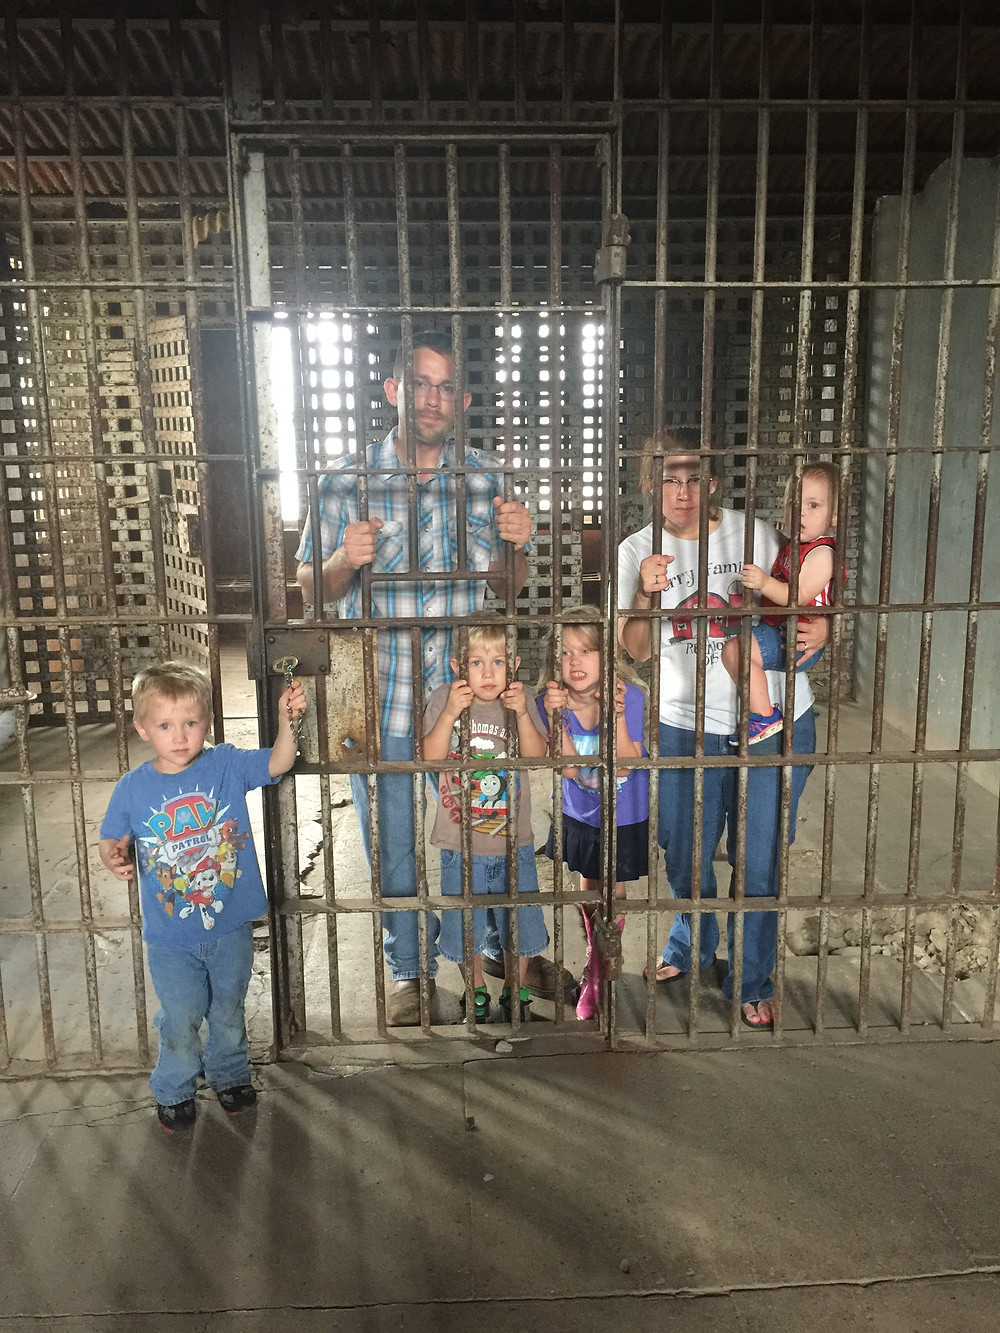 Visiting the historic Gonzales jail while we wait for hurricane Harvey to arrive